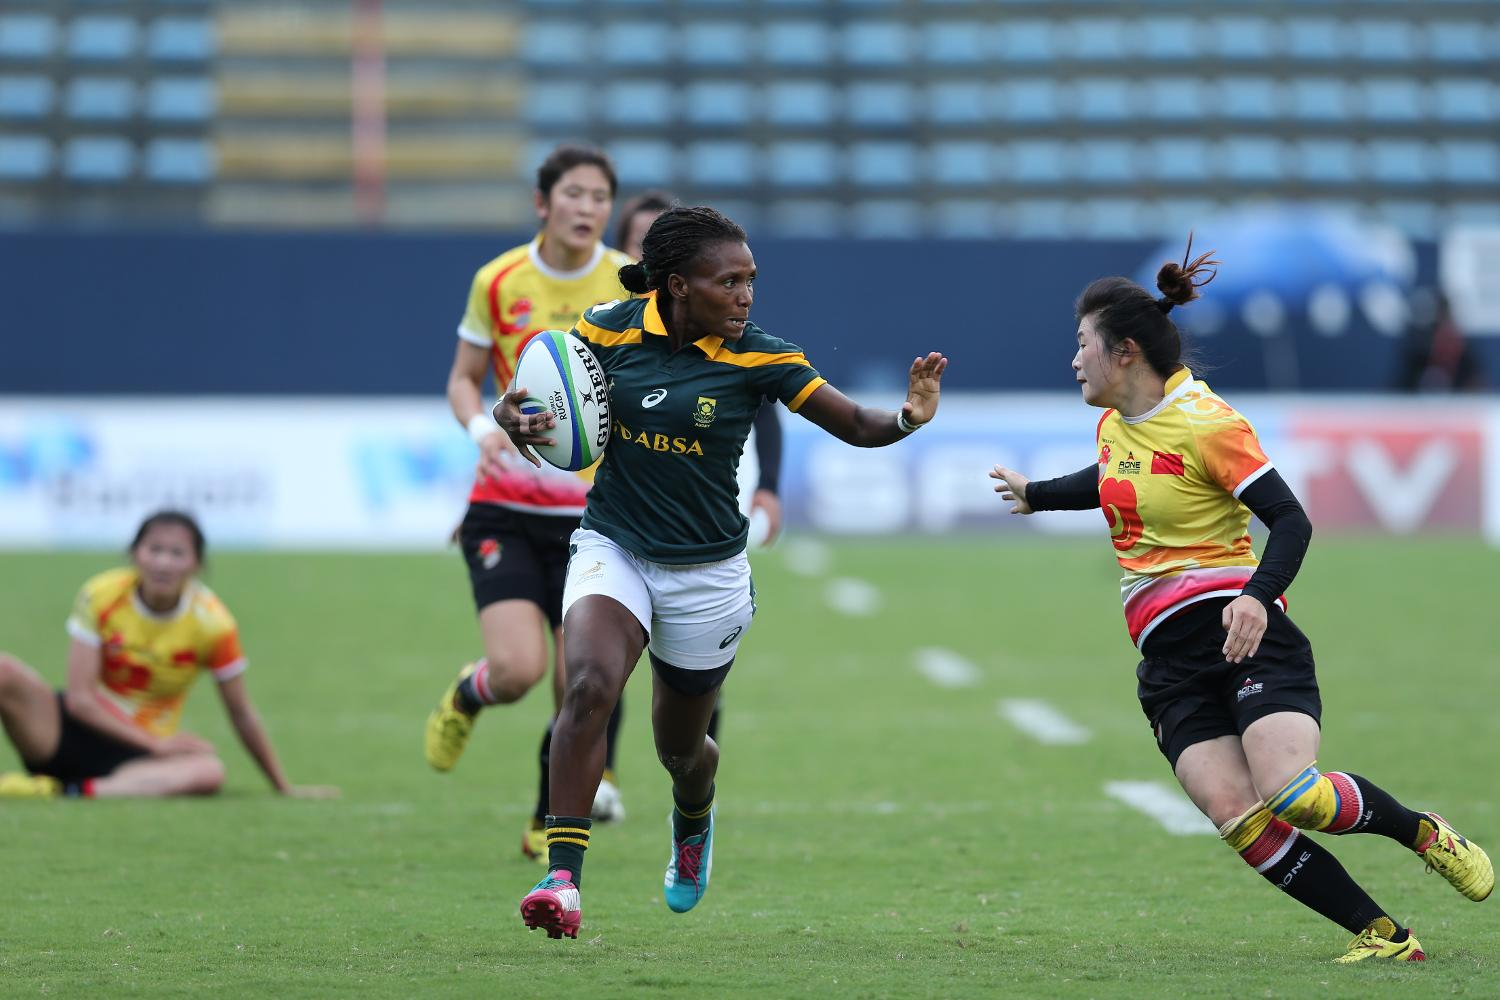 China and South Africa on day two at Brazil 7s